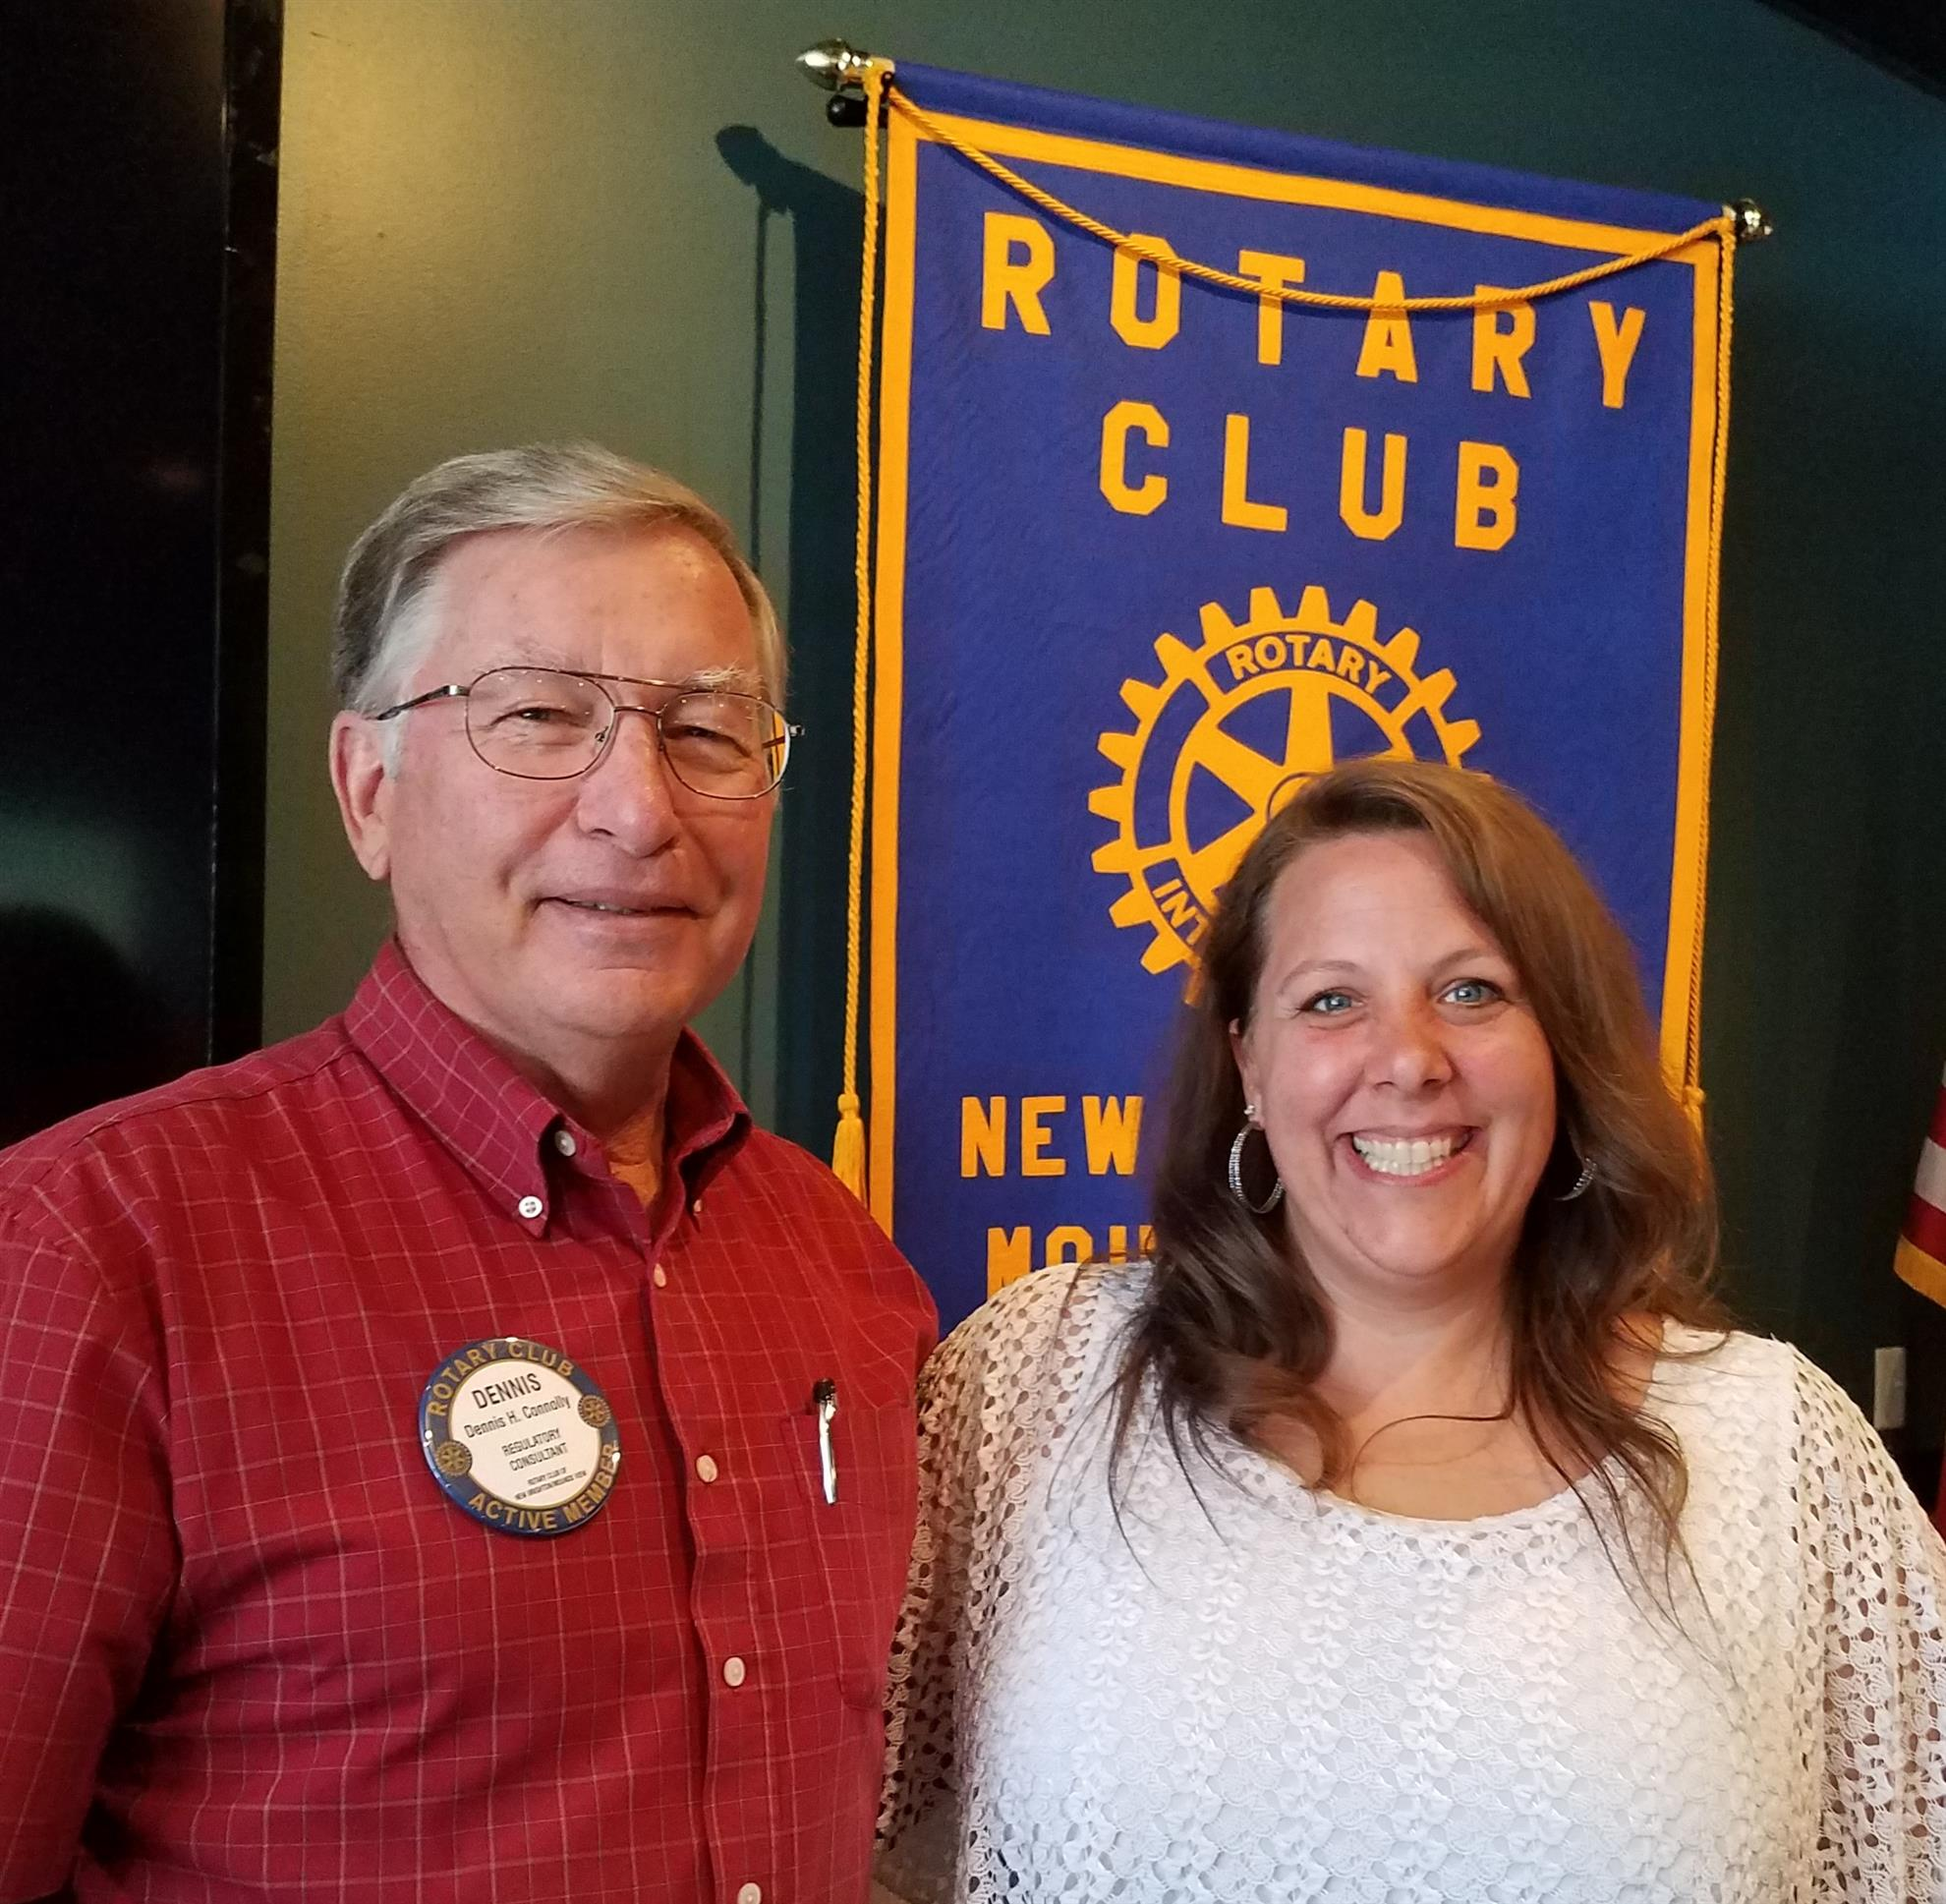 Stories Rotary Club Of New Brighton Mounds View